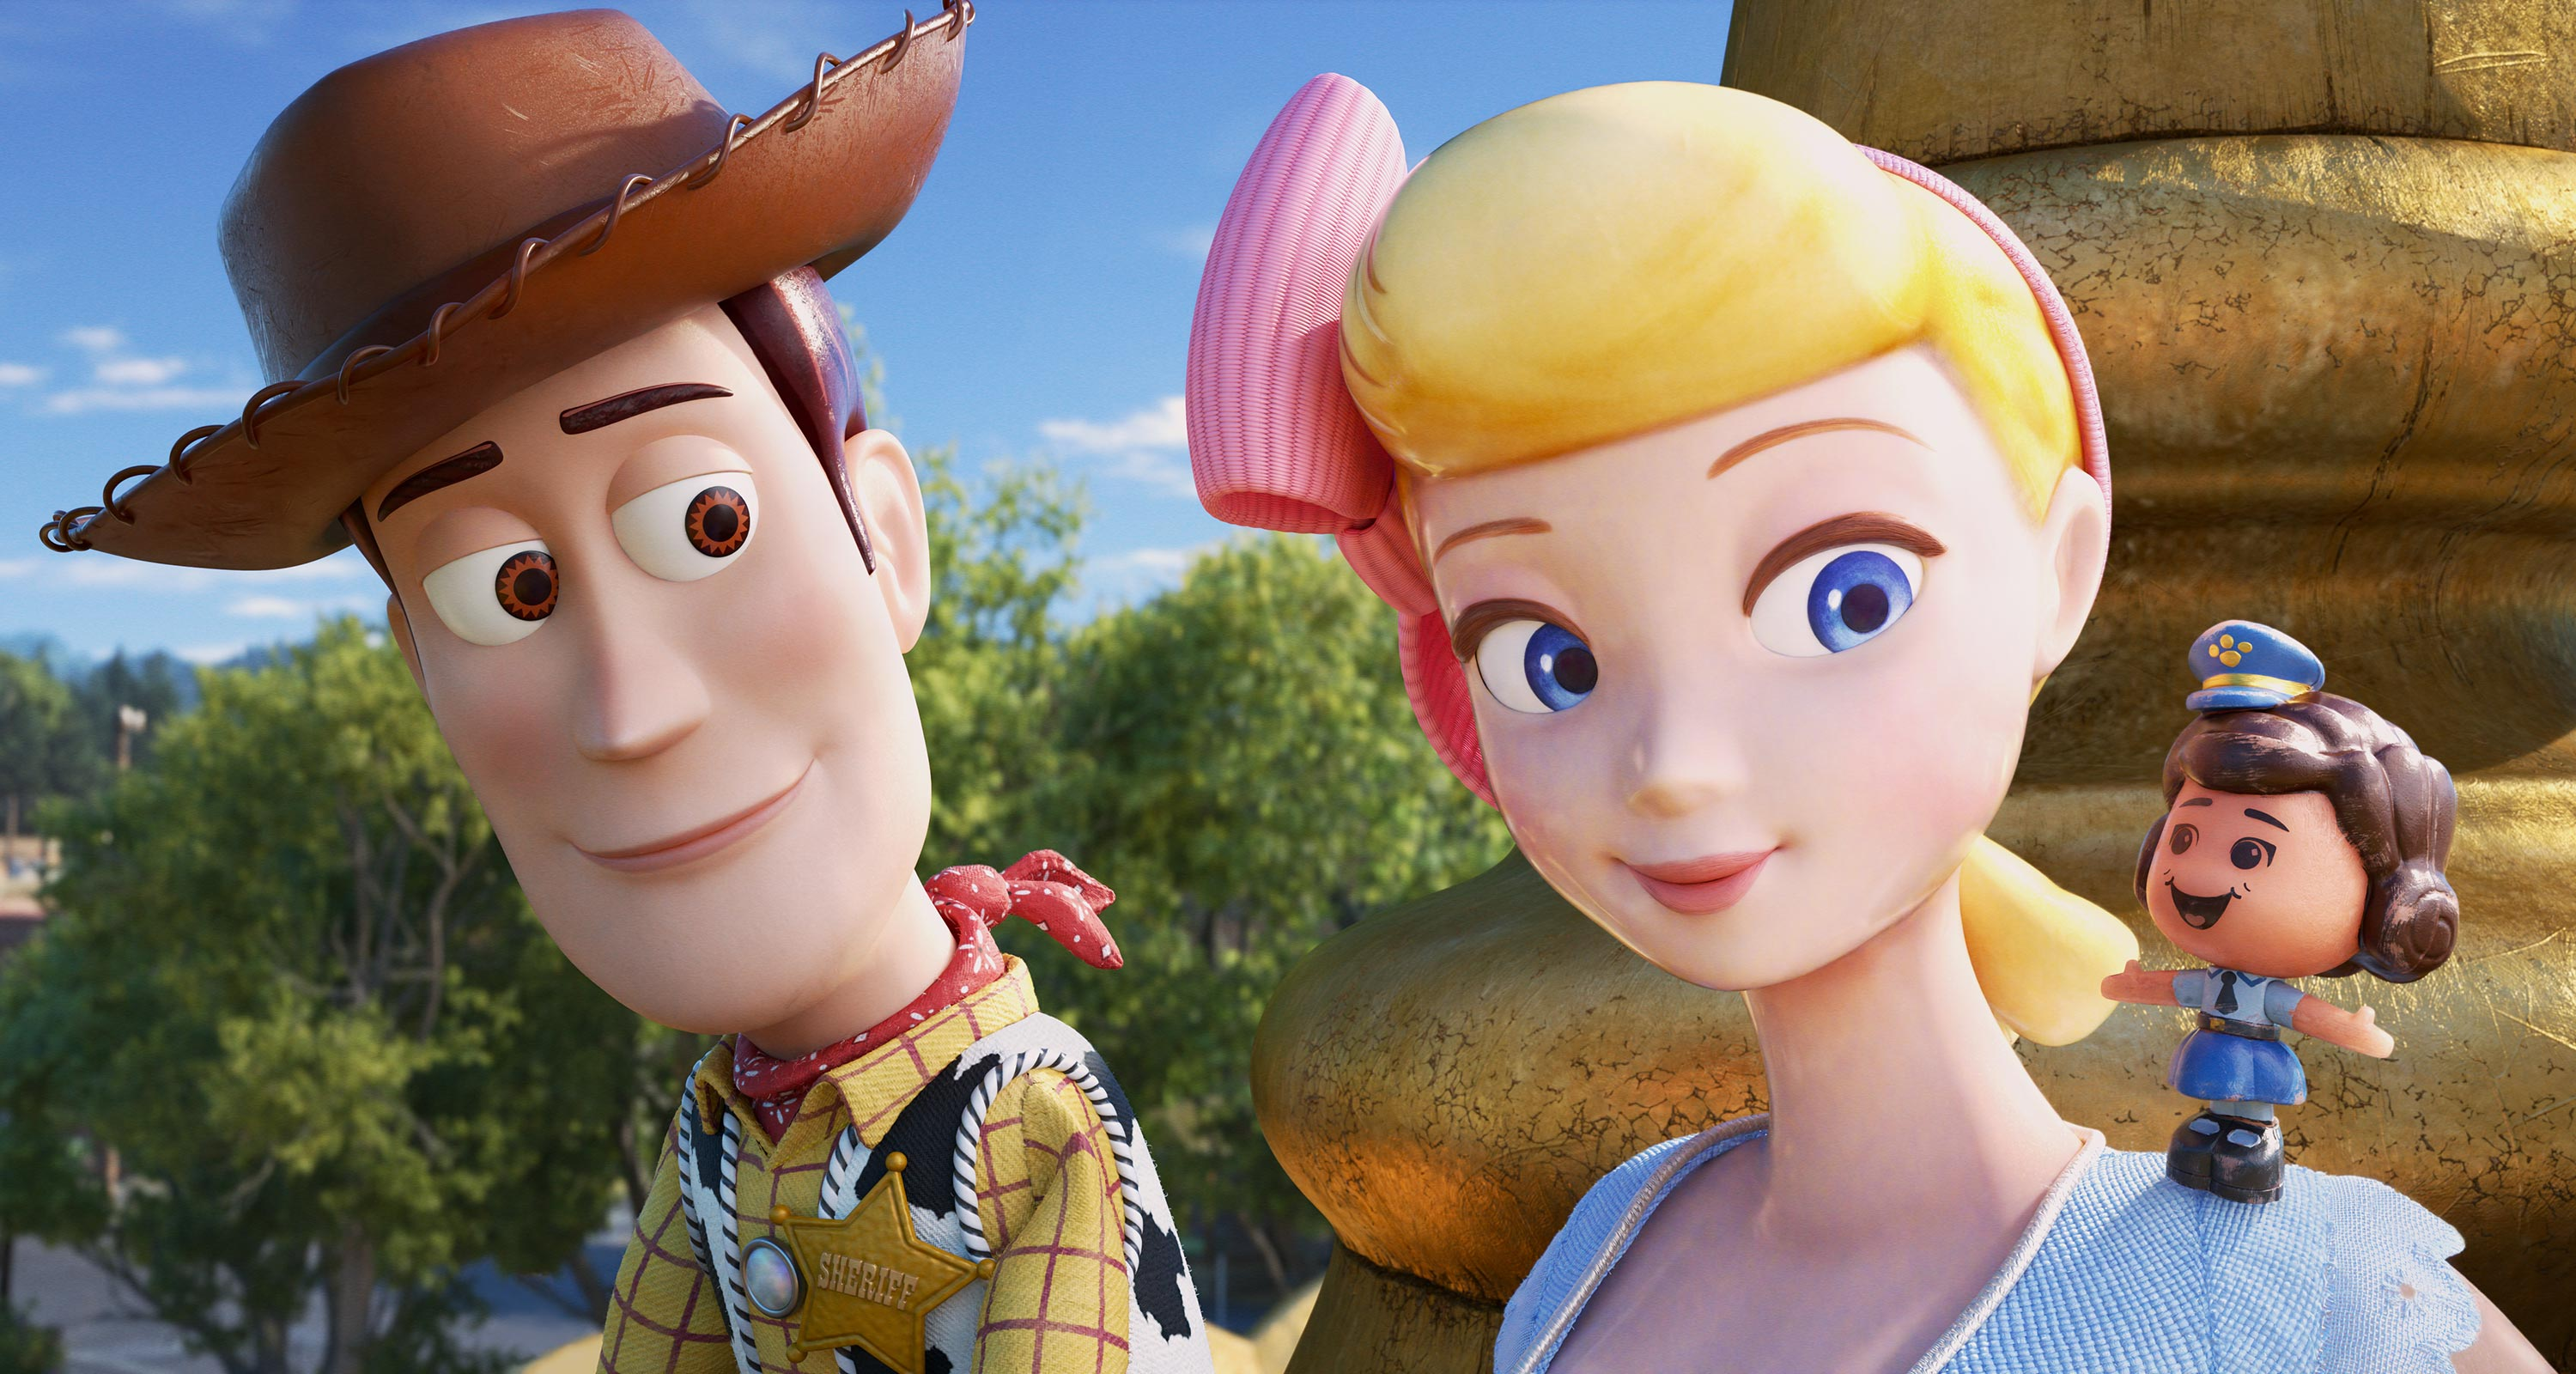 'Toy Story 4' Has 3rd Best Box Office Debut of the Year with $118 Million Opening